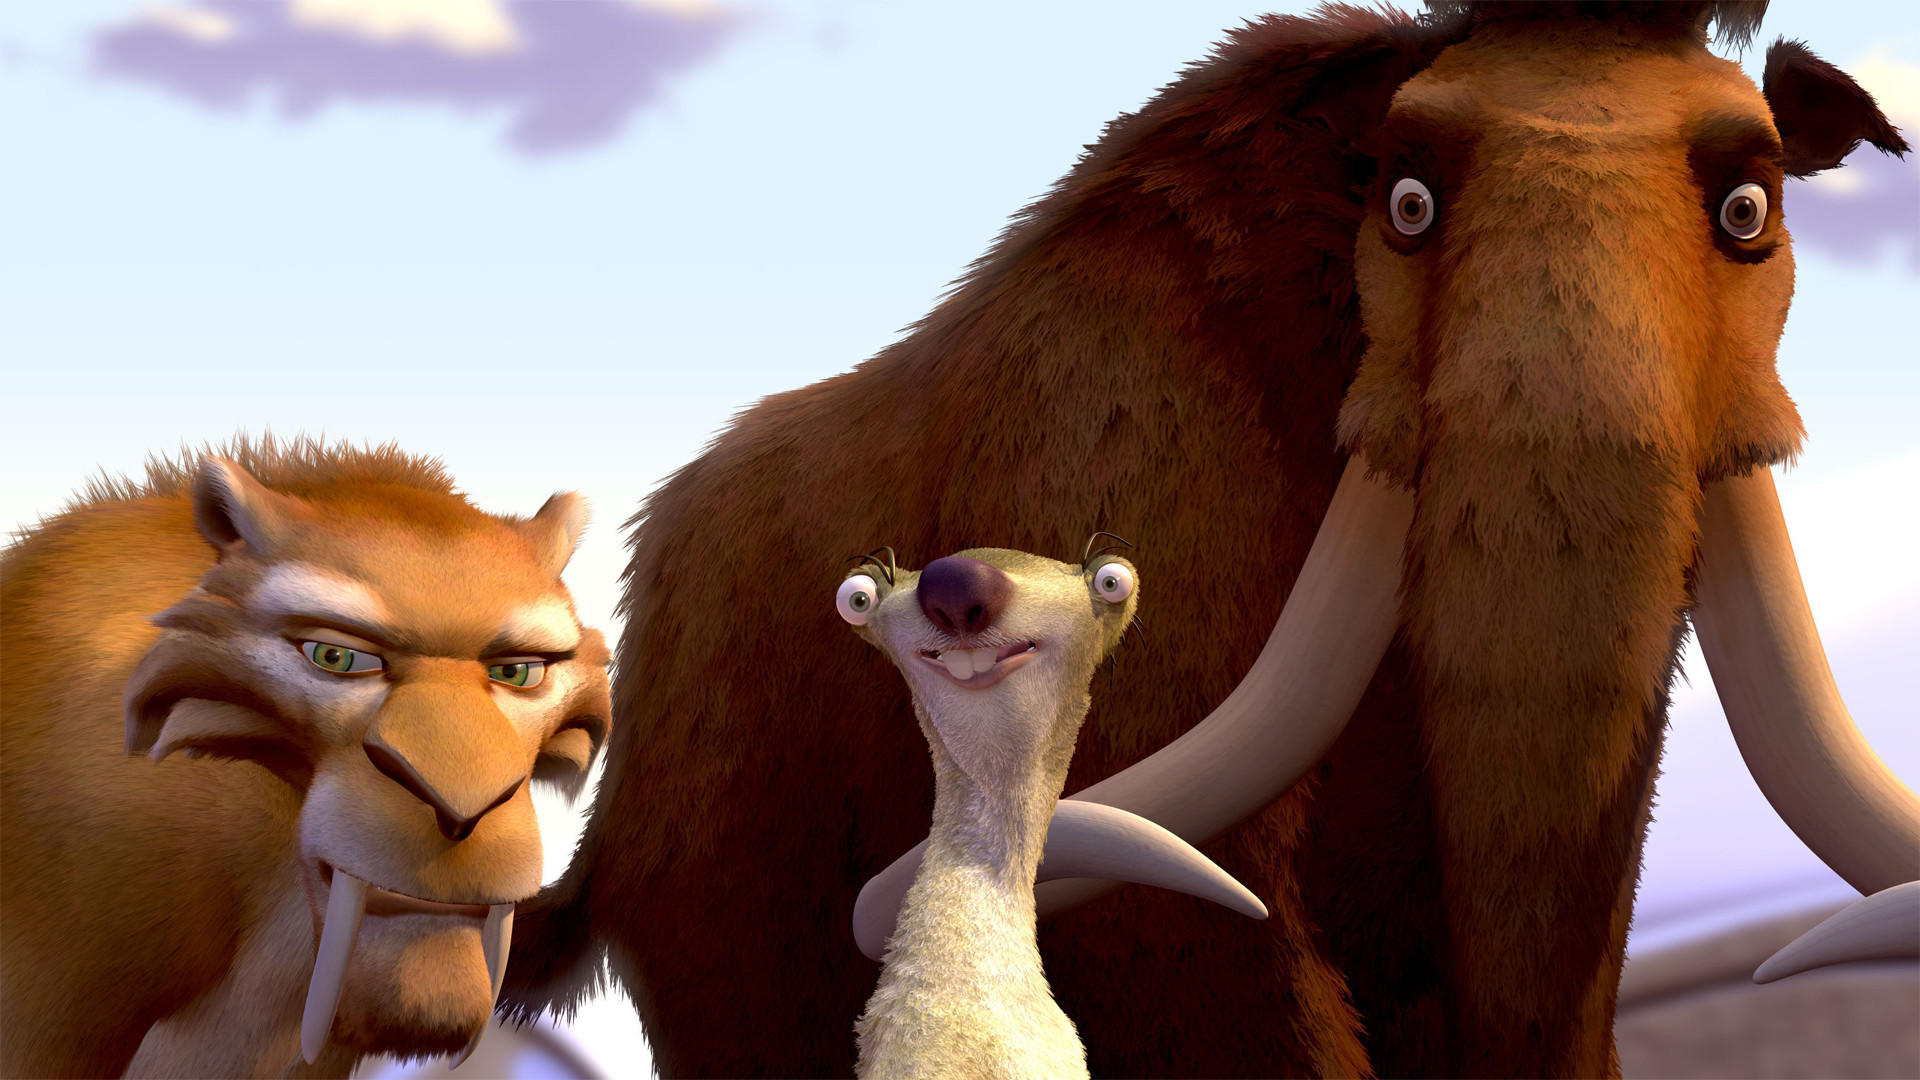 Diego the sabre-tooth tiger (voiced by Denis Leary), Sid the sloth (voiced by John Leguizamo) and the mammoth Manfred (voiced by Ray Romano) in Ice Age (2002)